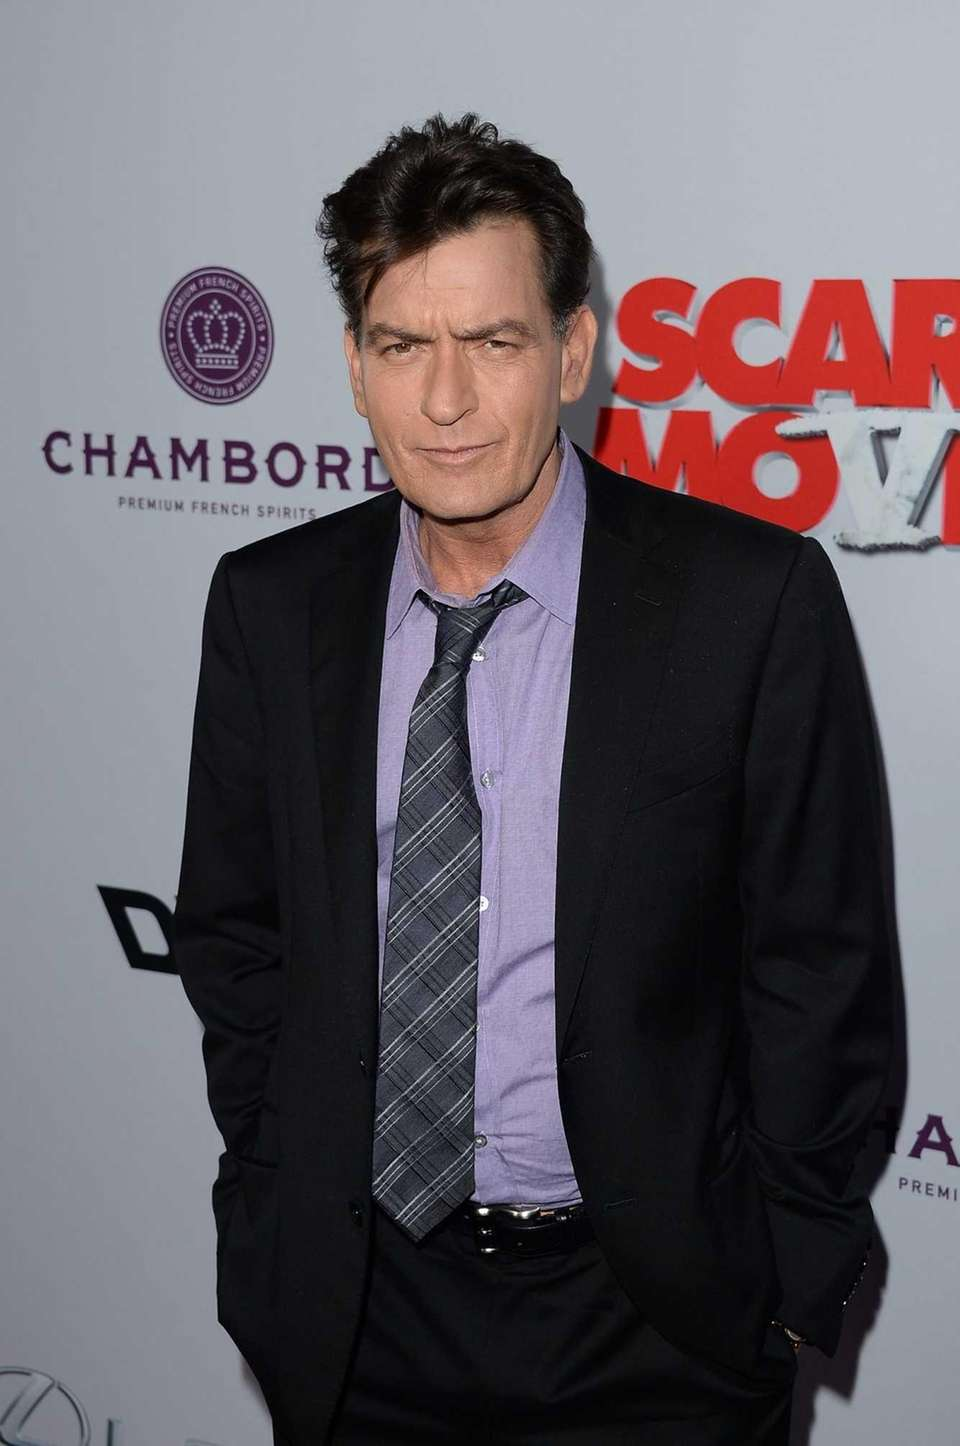 Sept. 3: Charlie Sheen